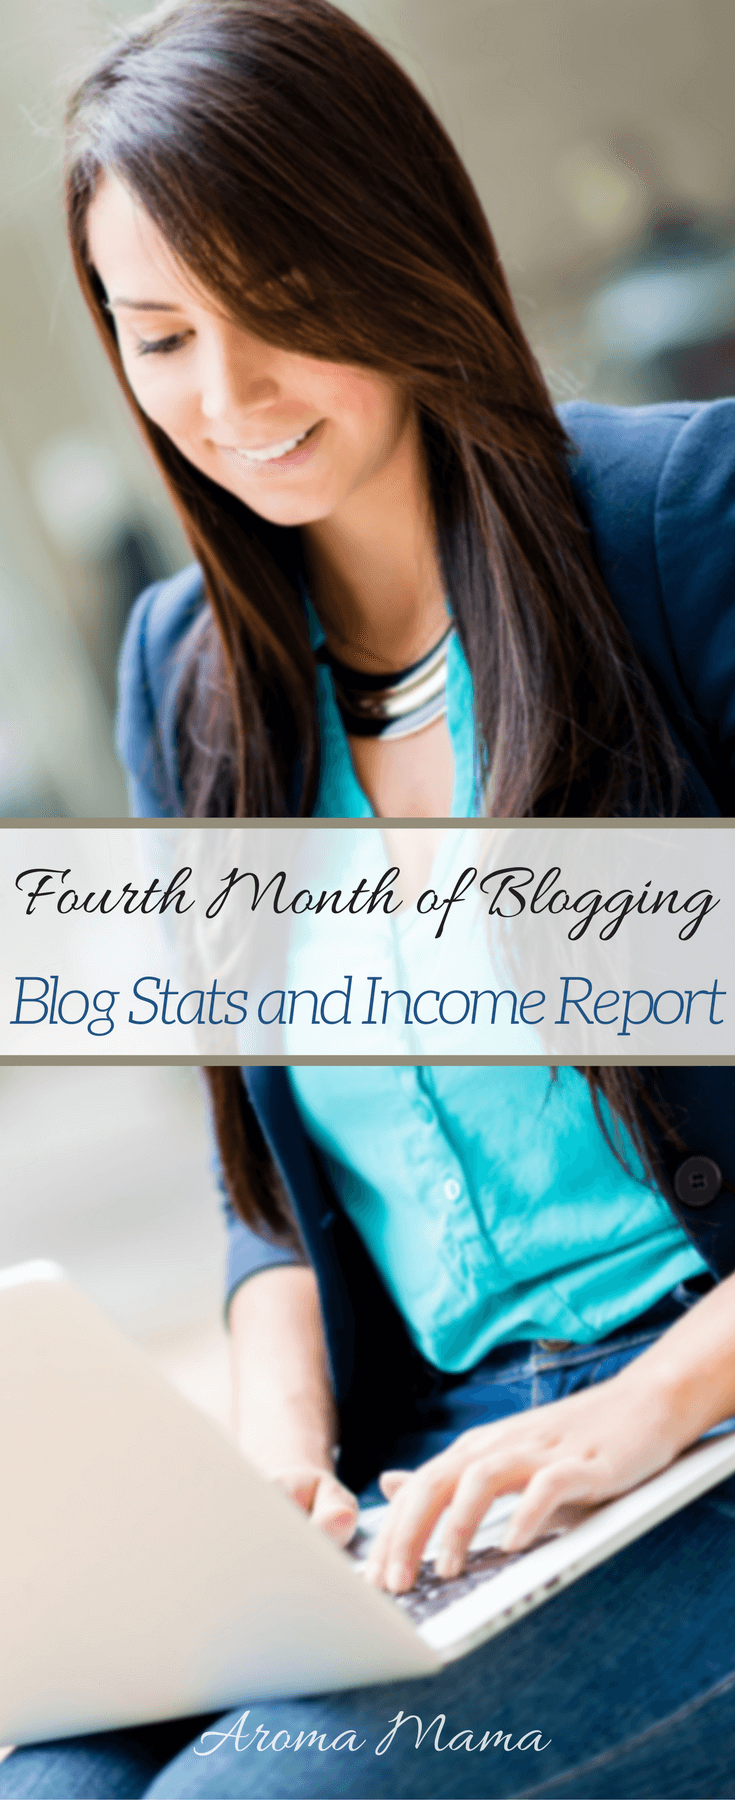 This is Aroma Mama's blog income report for her fourth month of blogging. She shares blog stats, income, expenses, how she made her blog income, what she learned, and goals for next month.